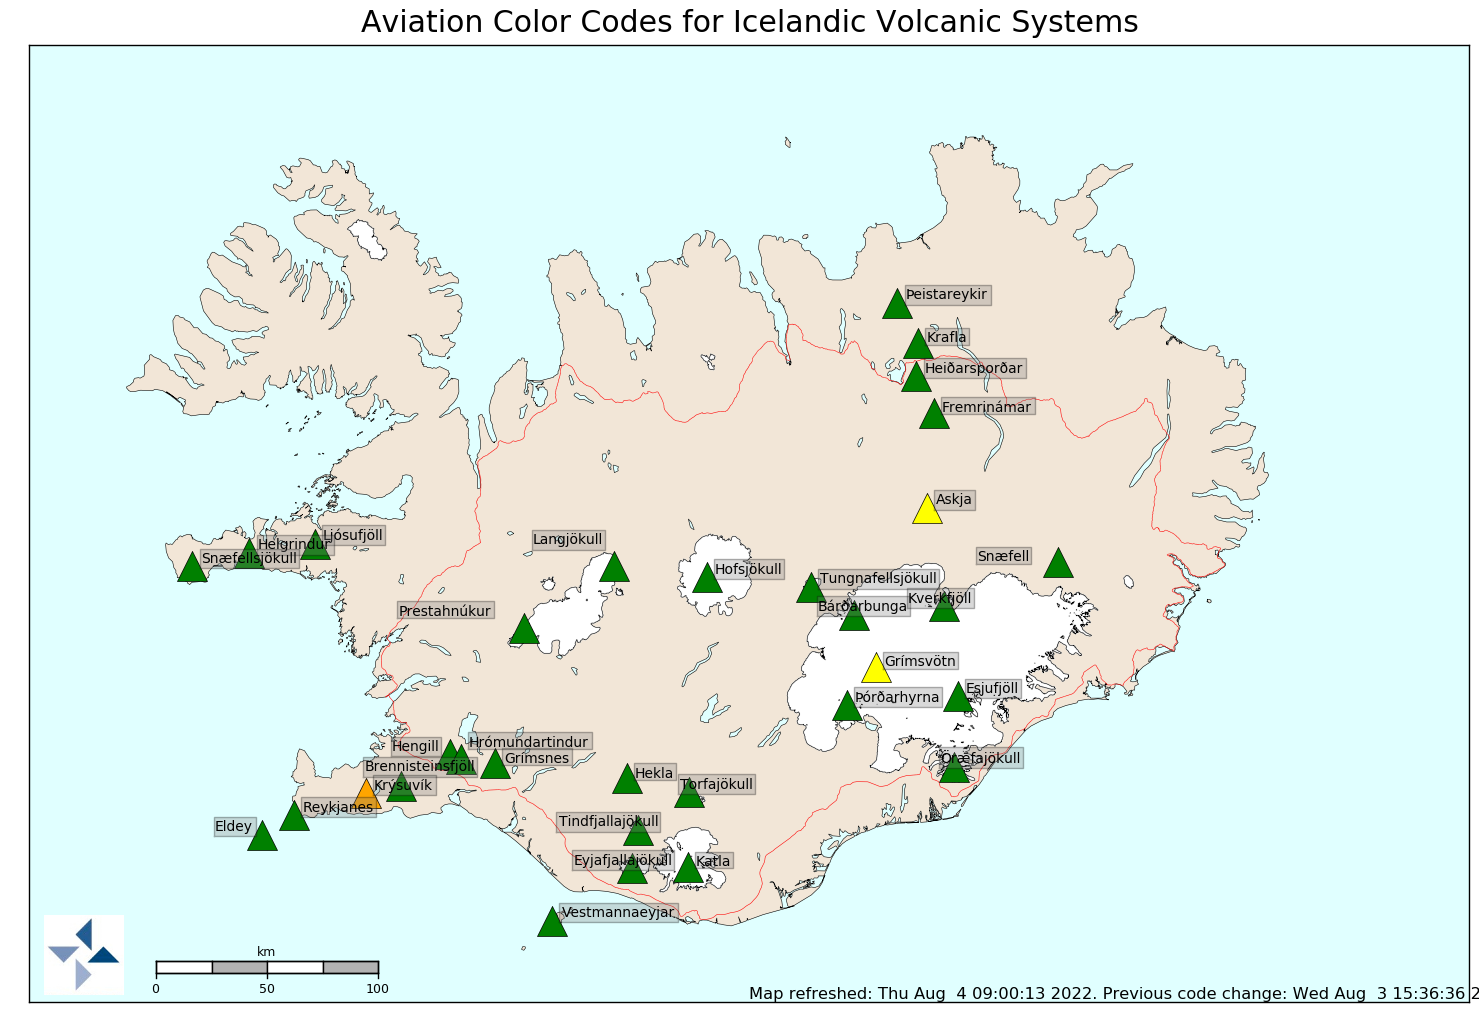 Aviation colour code map | Volcanic eruptions | Icelandic